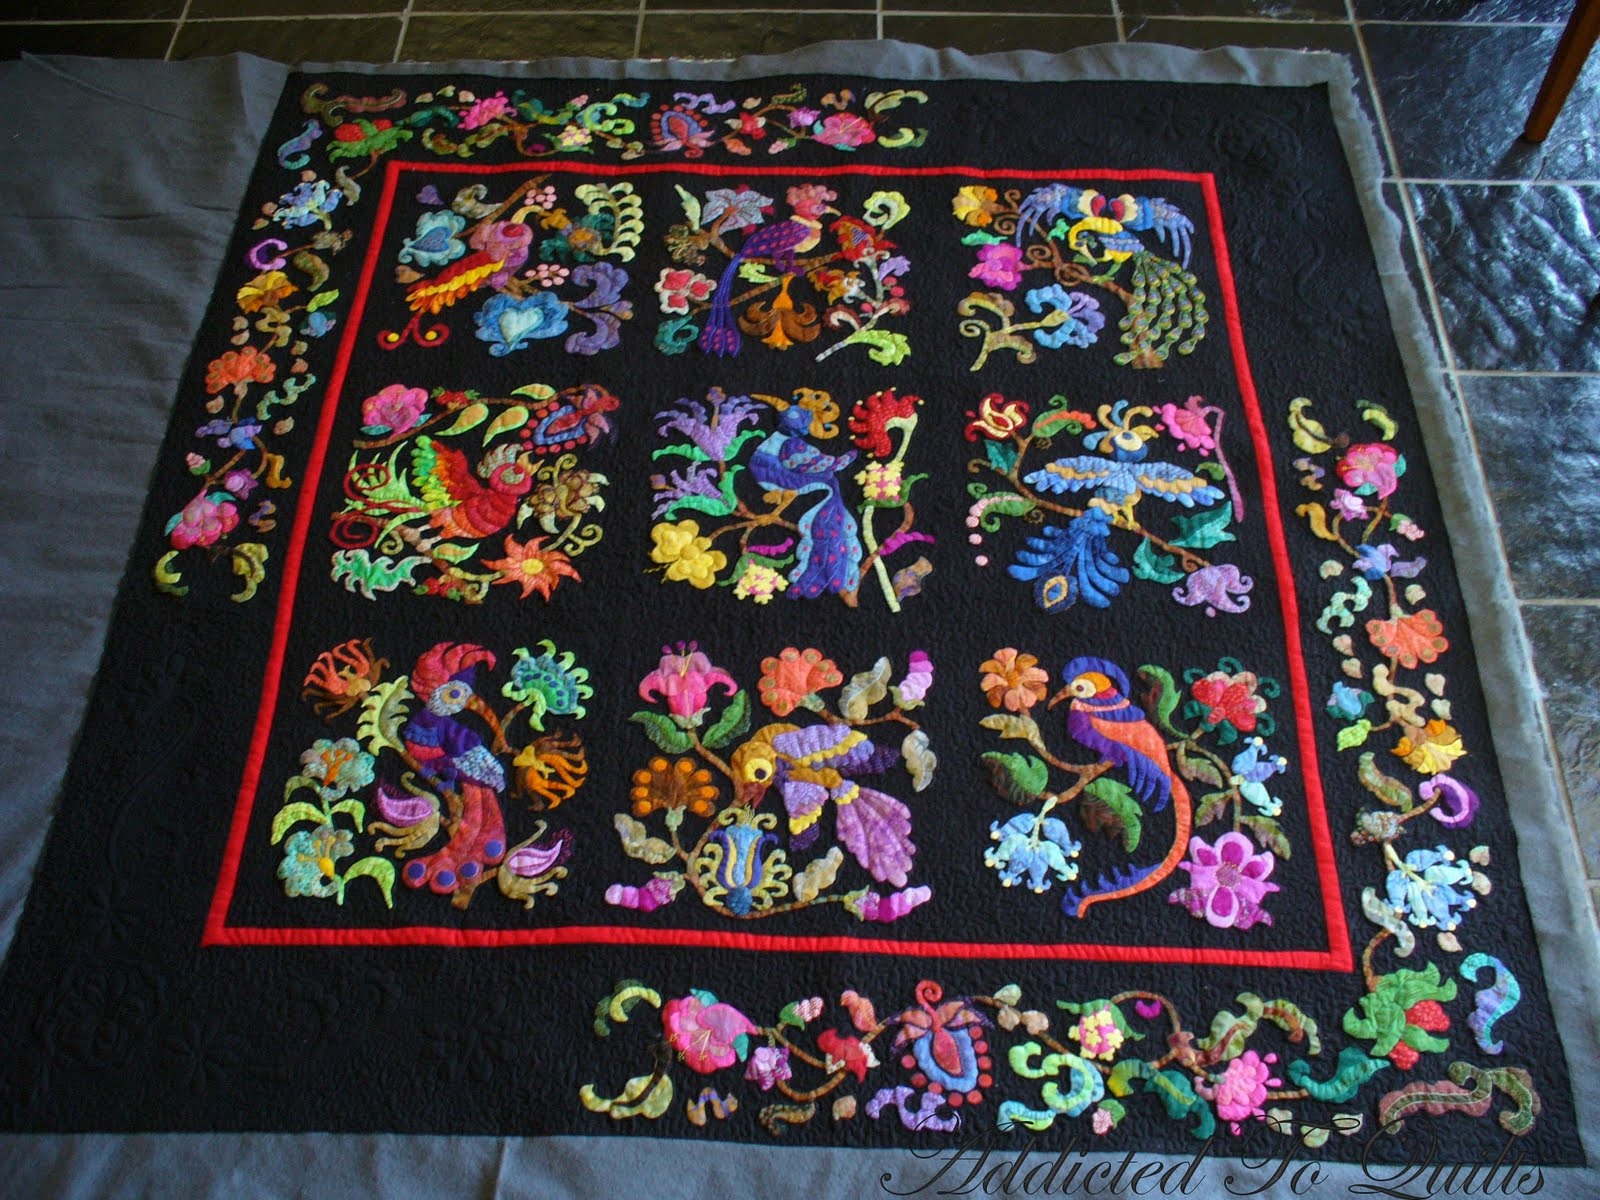 Addicted To Quilts: Birds of Paradise Quilt : quilts with birds - Adamdwight.com